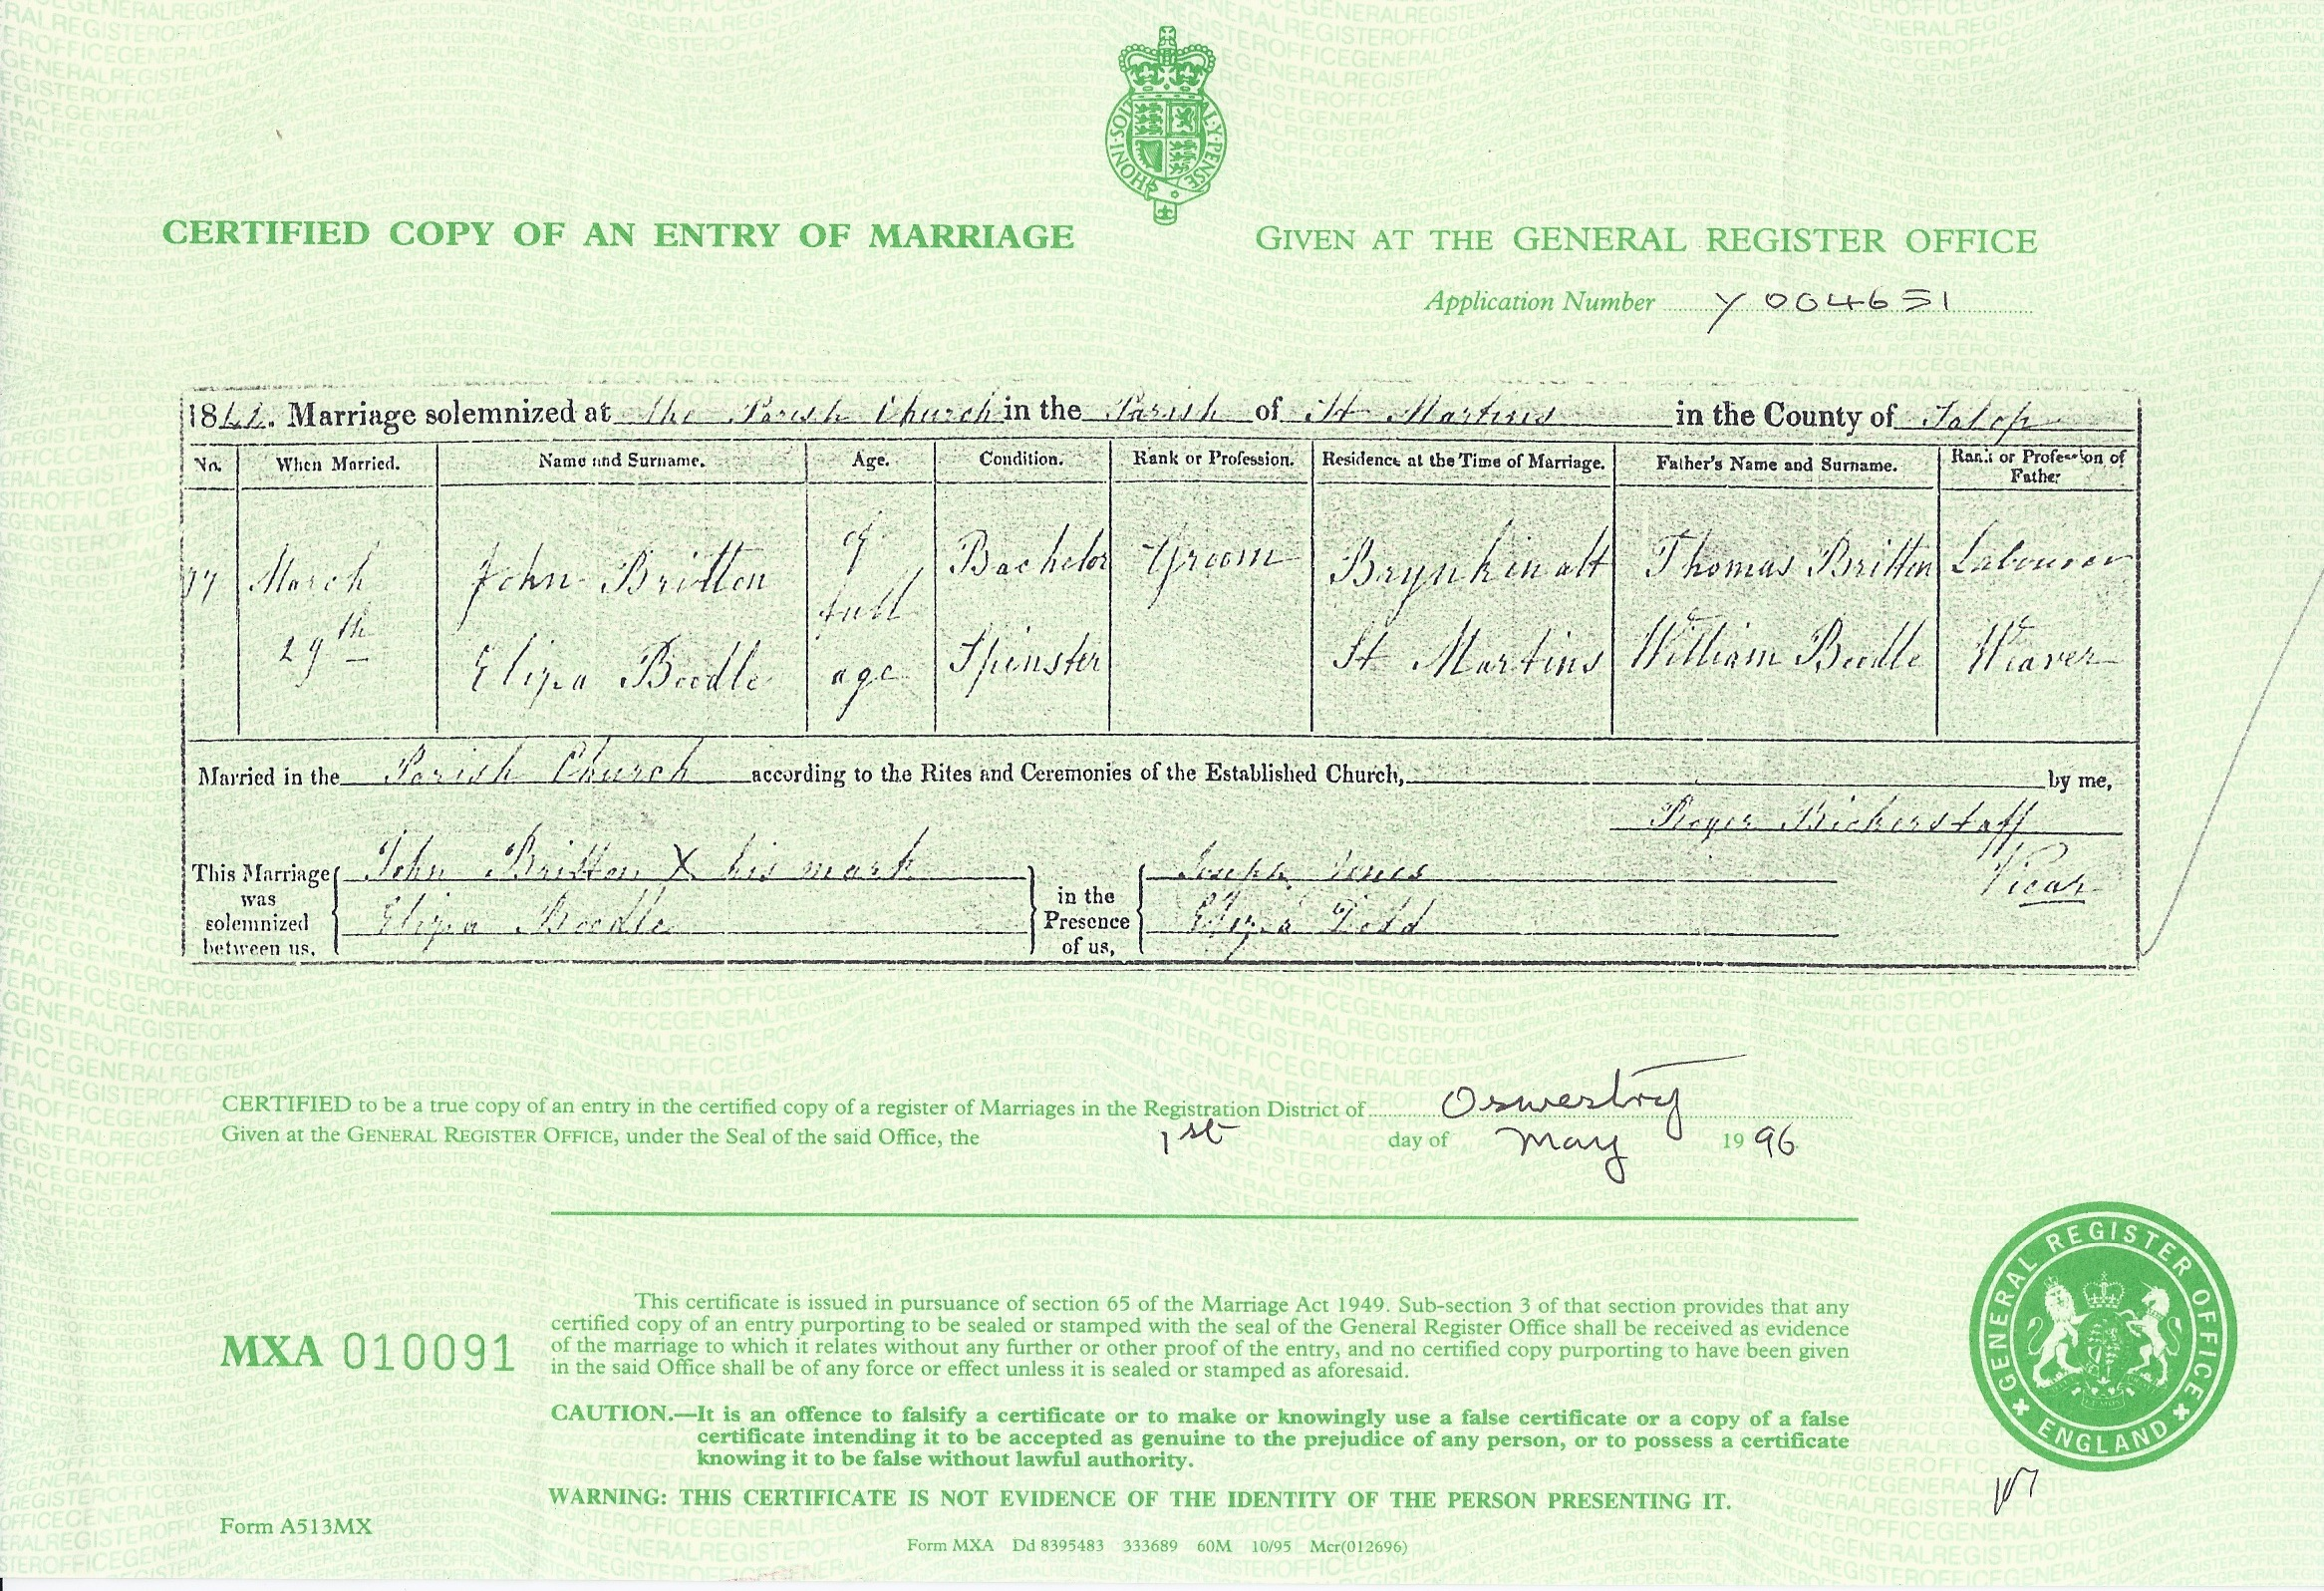 Marriage Certificate for John Britton and Eliza Boodle